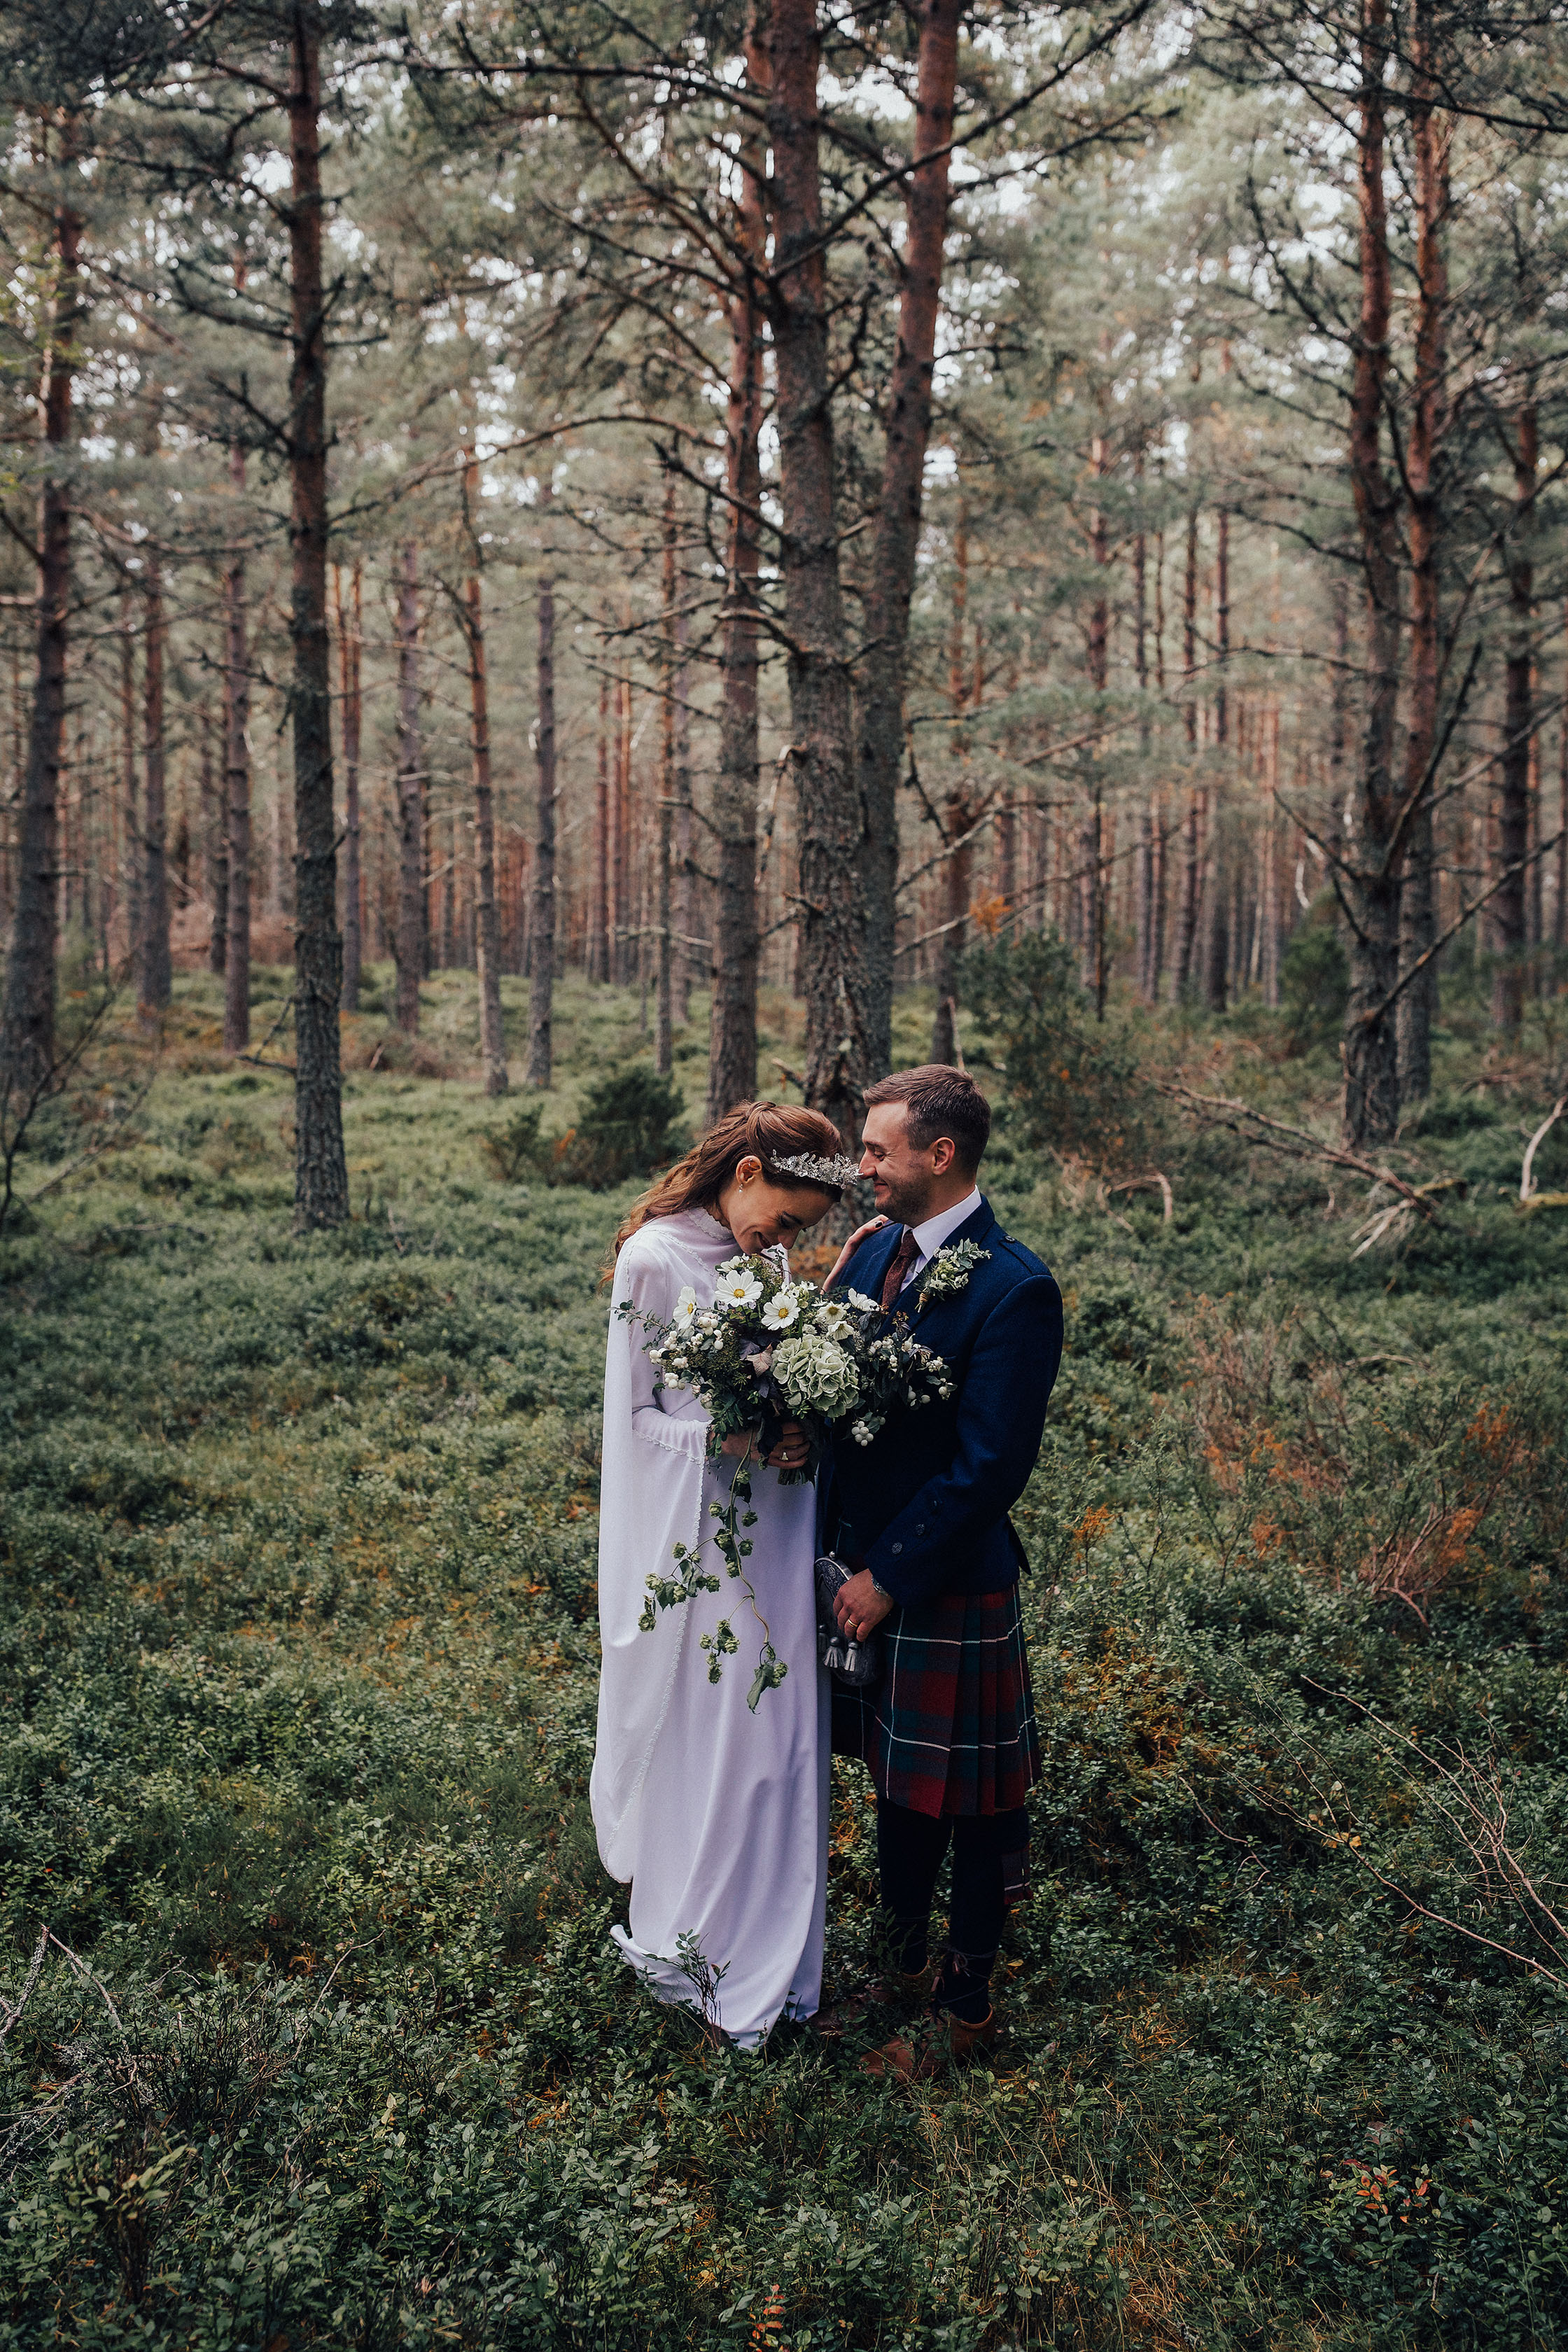 LOCH_GARTEN_DIY_WEDDING_PJ_PHILLIPS_PHOTOGRAPHY_142.jpg